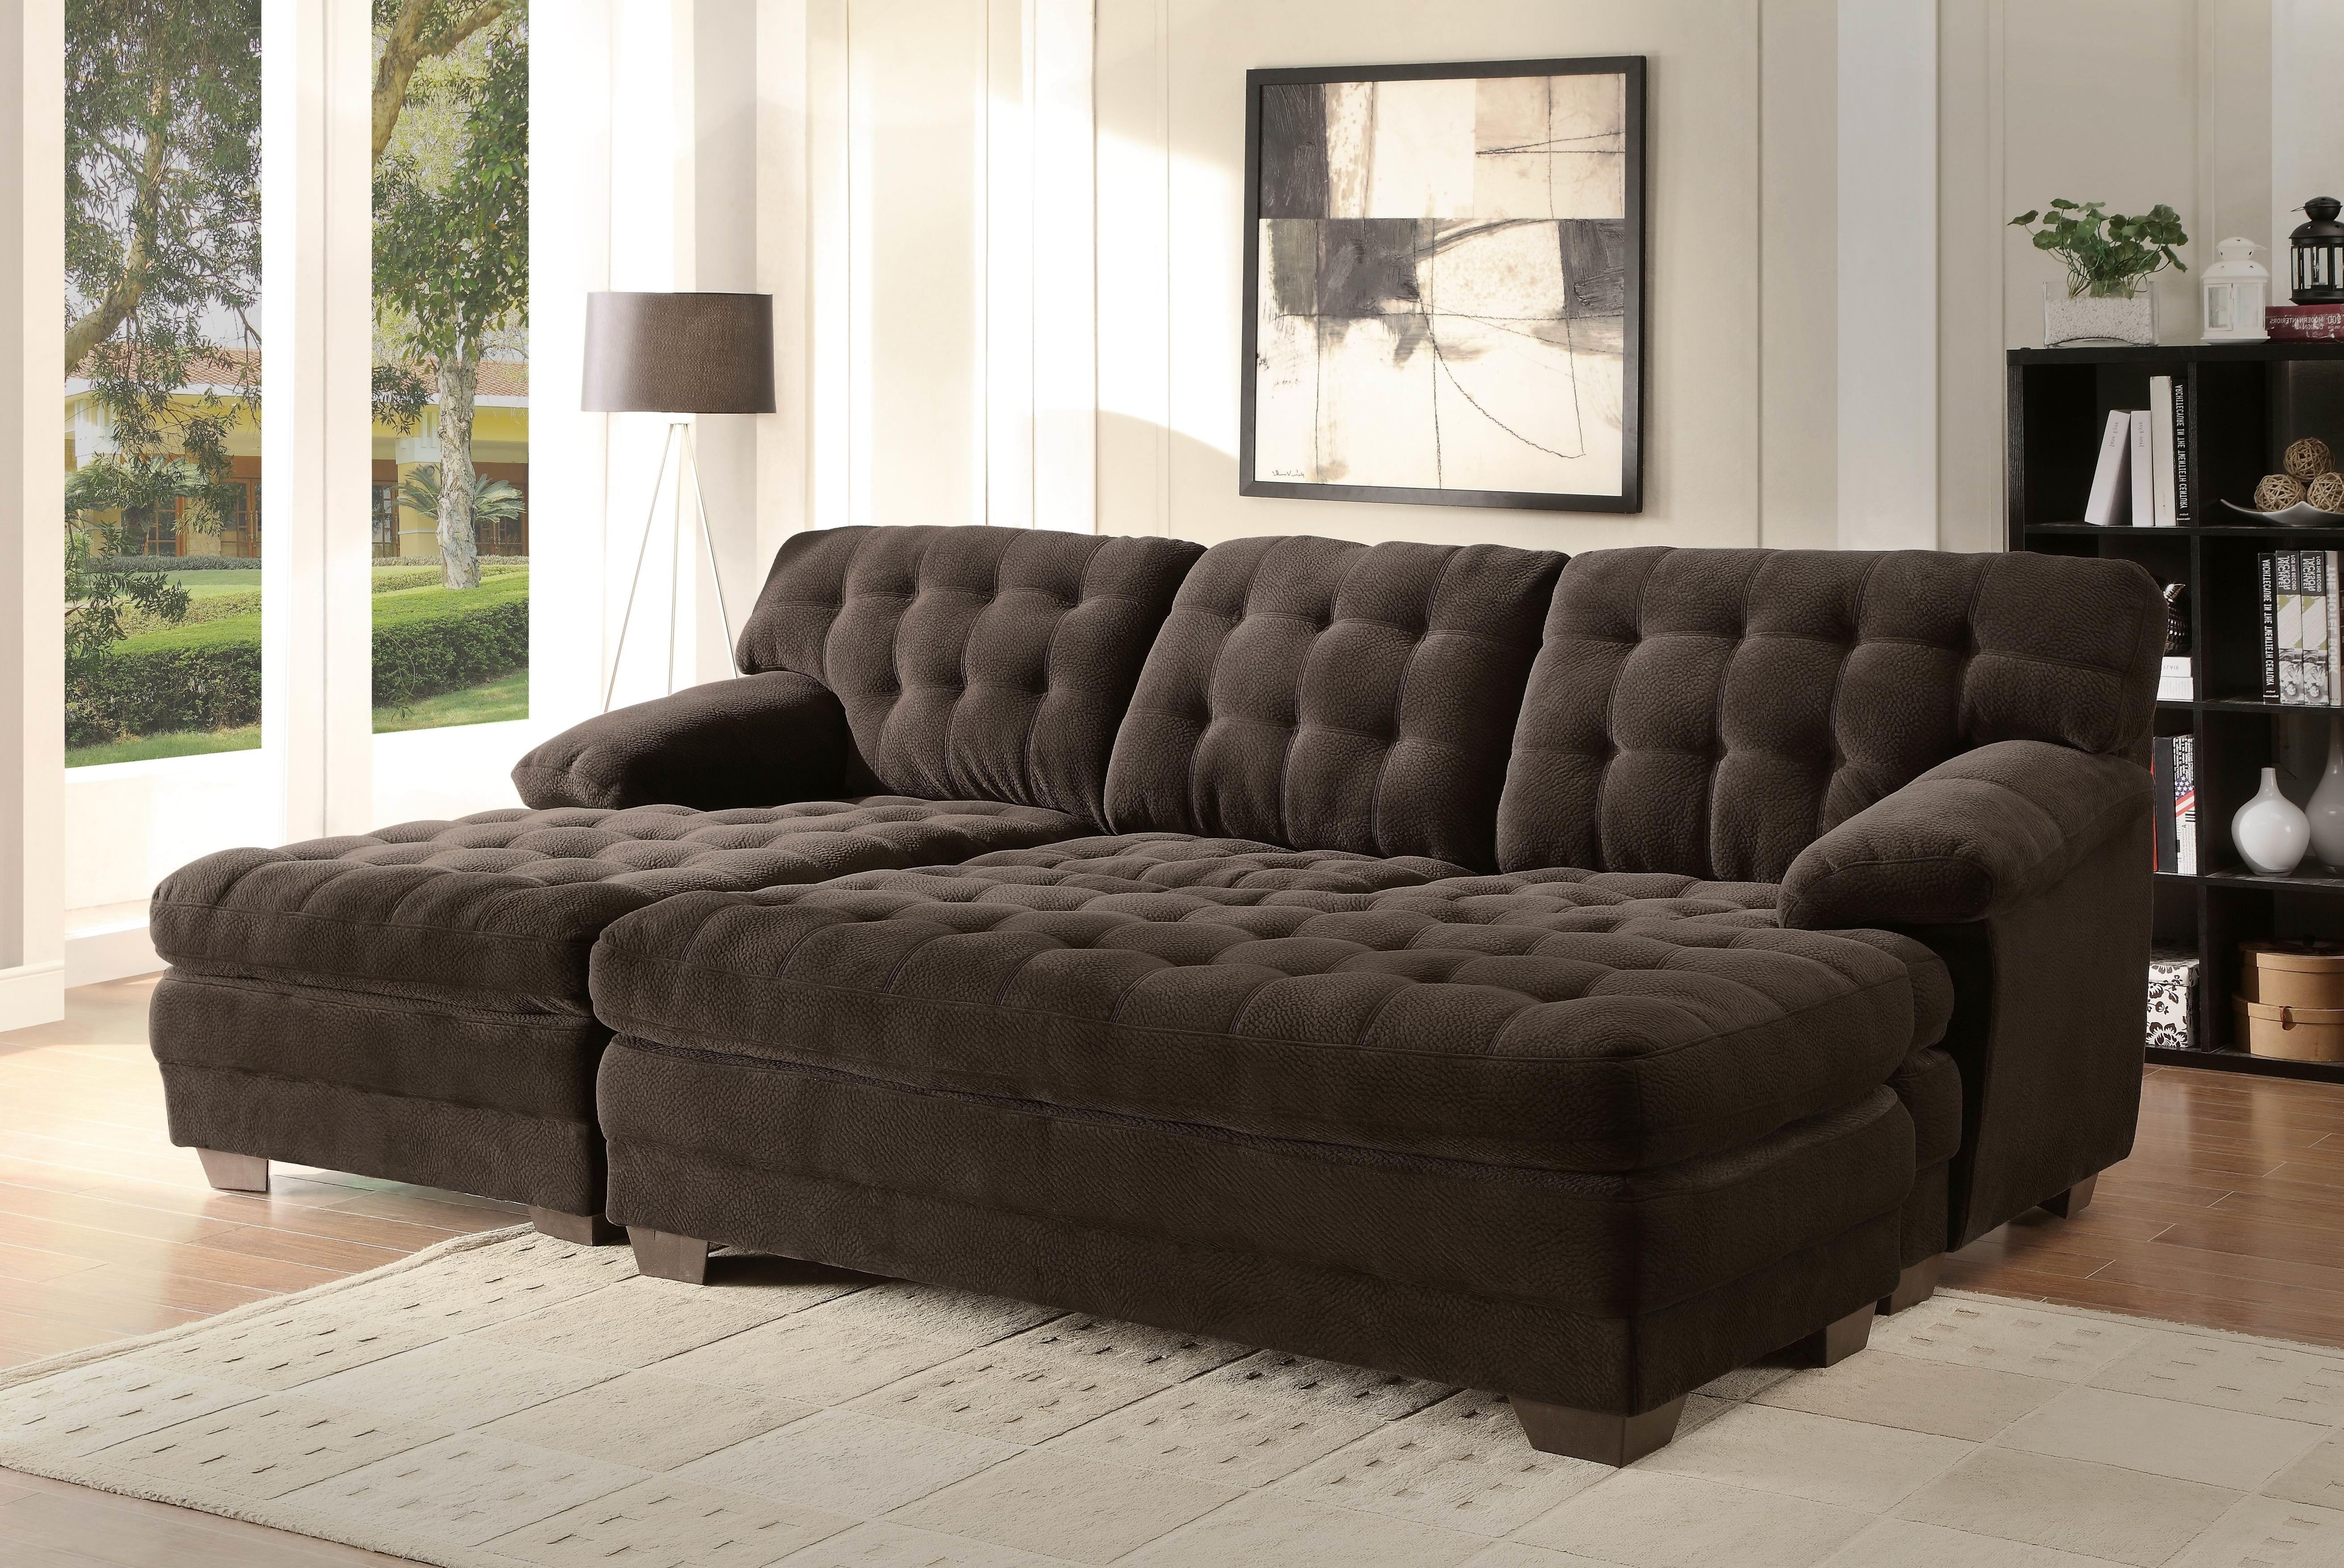 New Sectional Sofa With Large Ottoman 97 For Your Largest For Well Known Sofas With Large Ottoman (View 4 of 15)